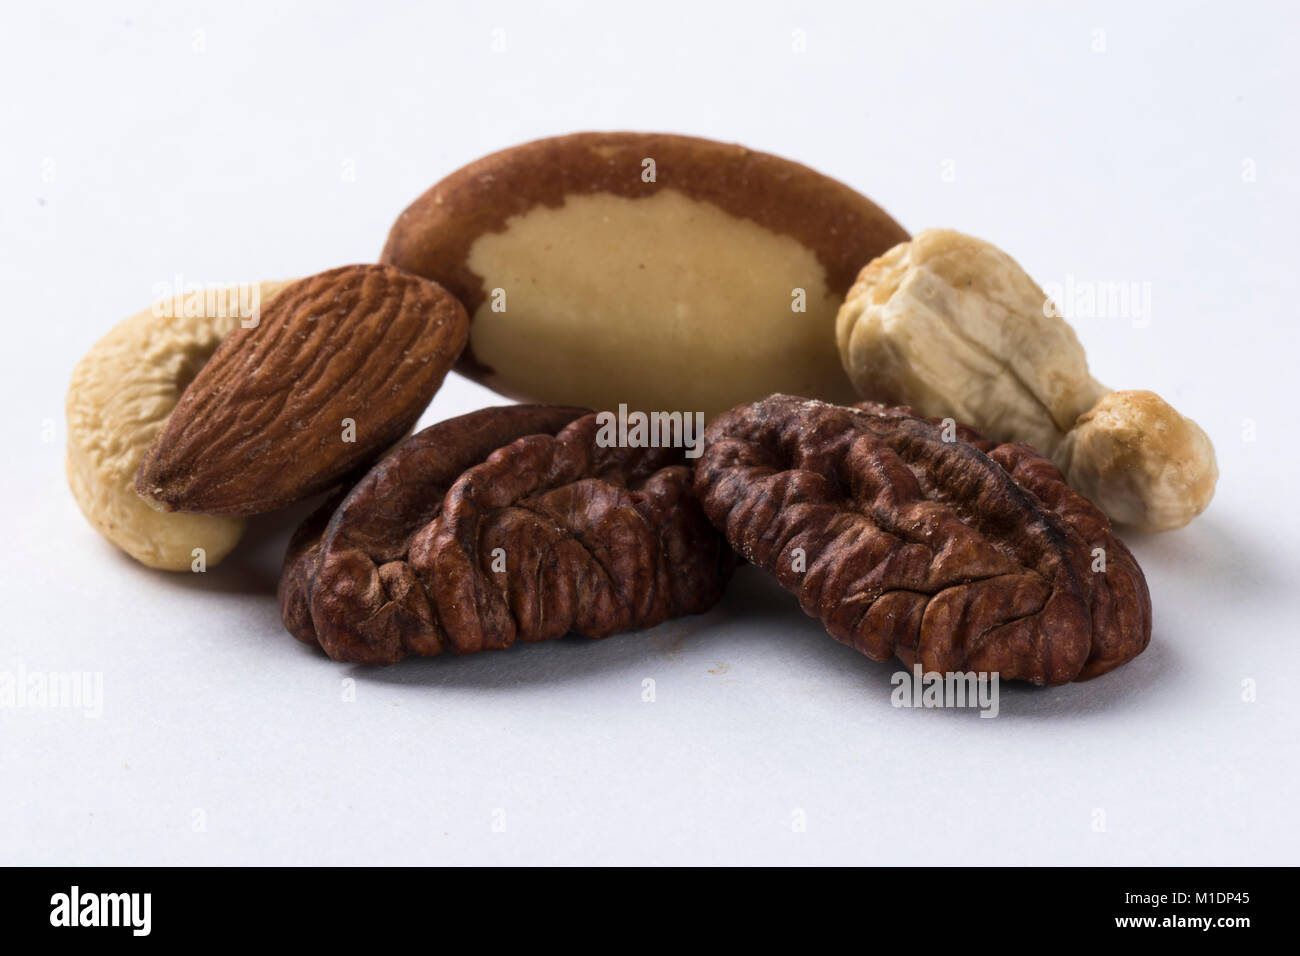 Mixed nuts isolated on a white background - Stock Image